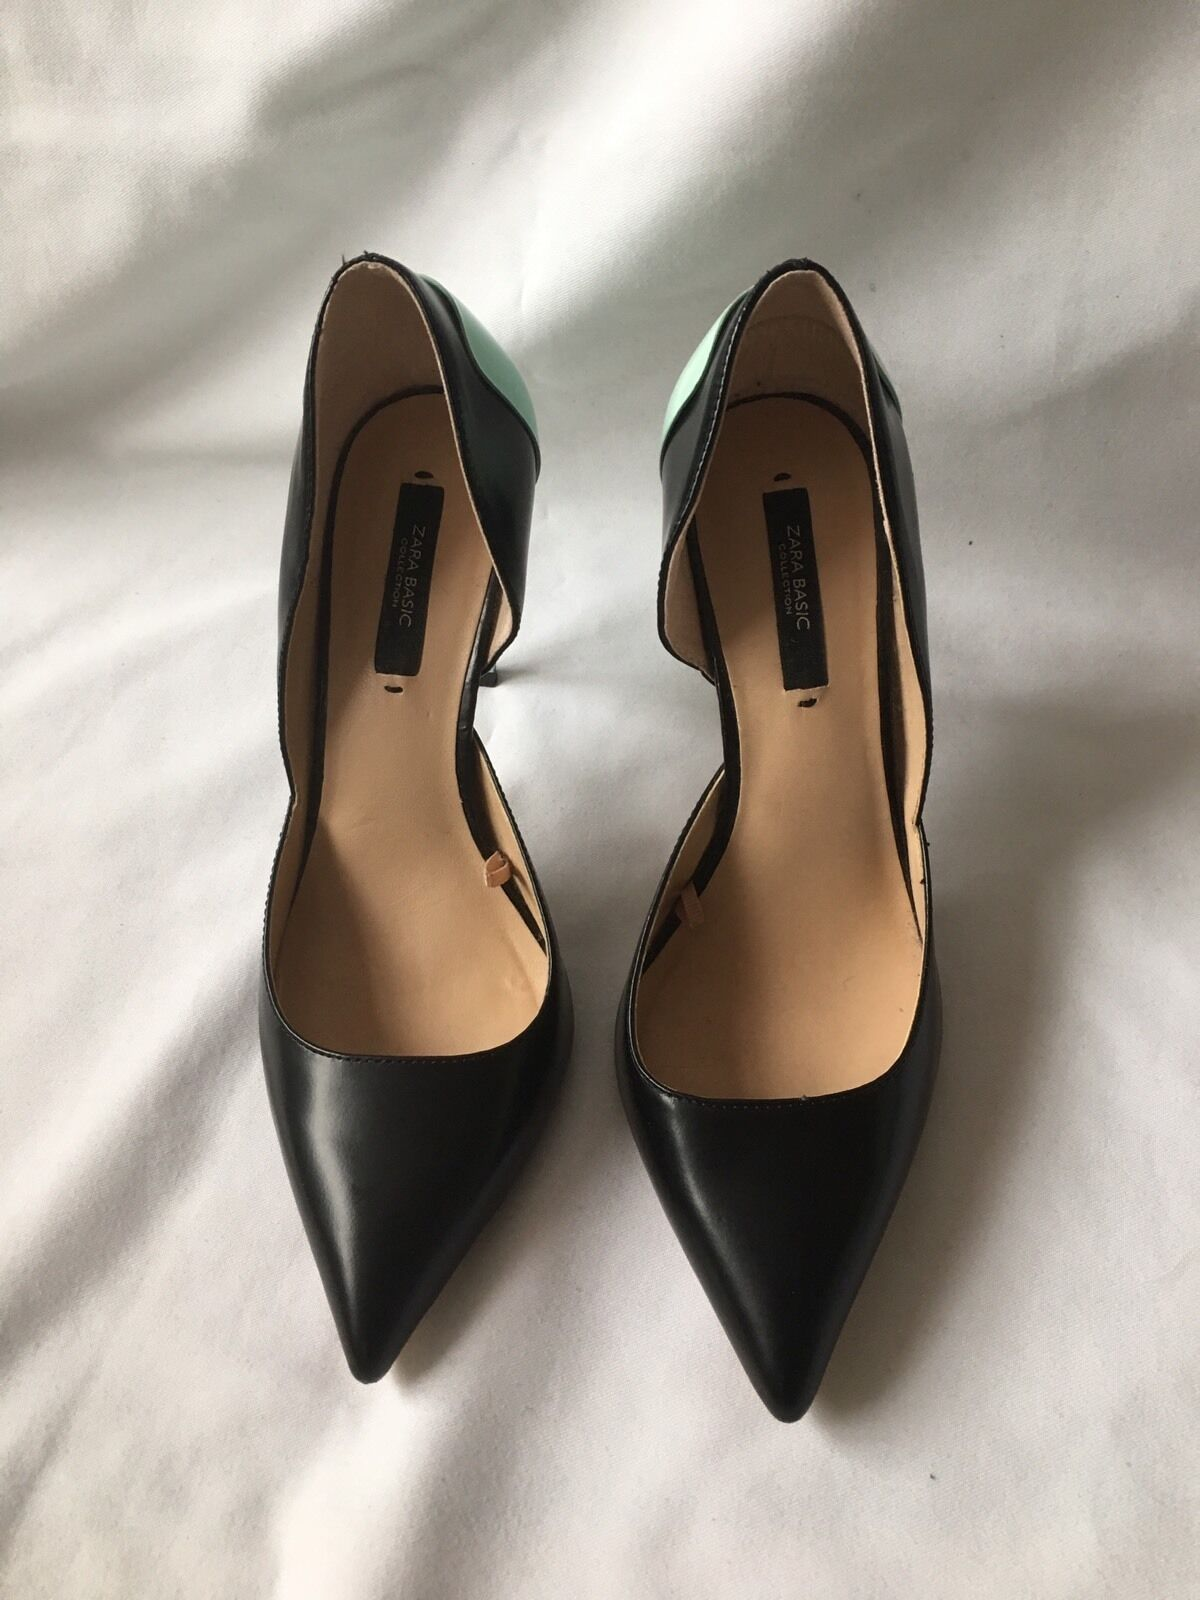 NEW ZARA BEAUTIFUL LEATHER LEATHER LEATHER ASYMMETRICAL HIGH HEEL SHOES SIZE 5(38) f473ab